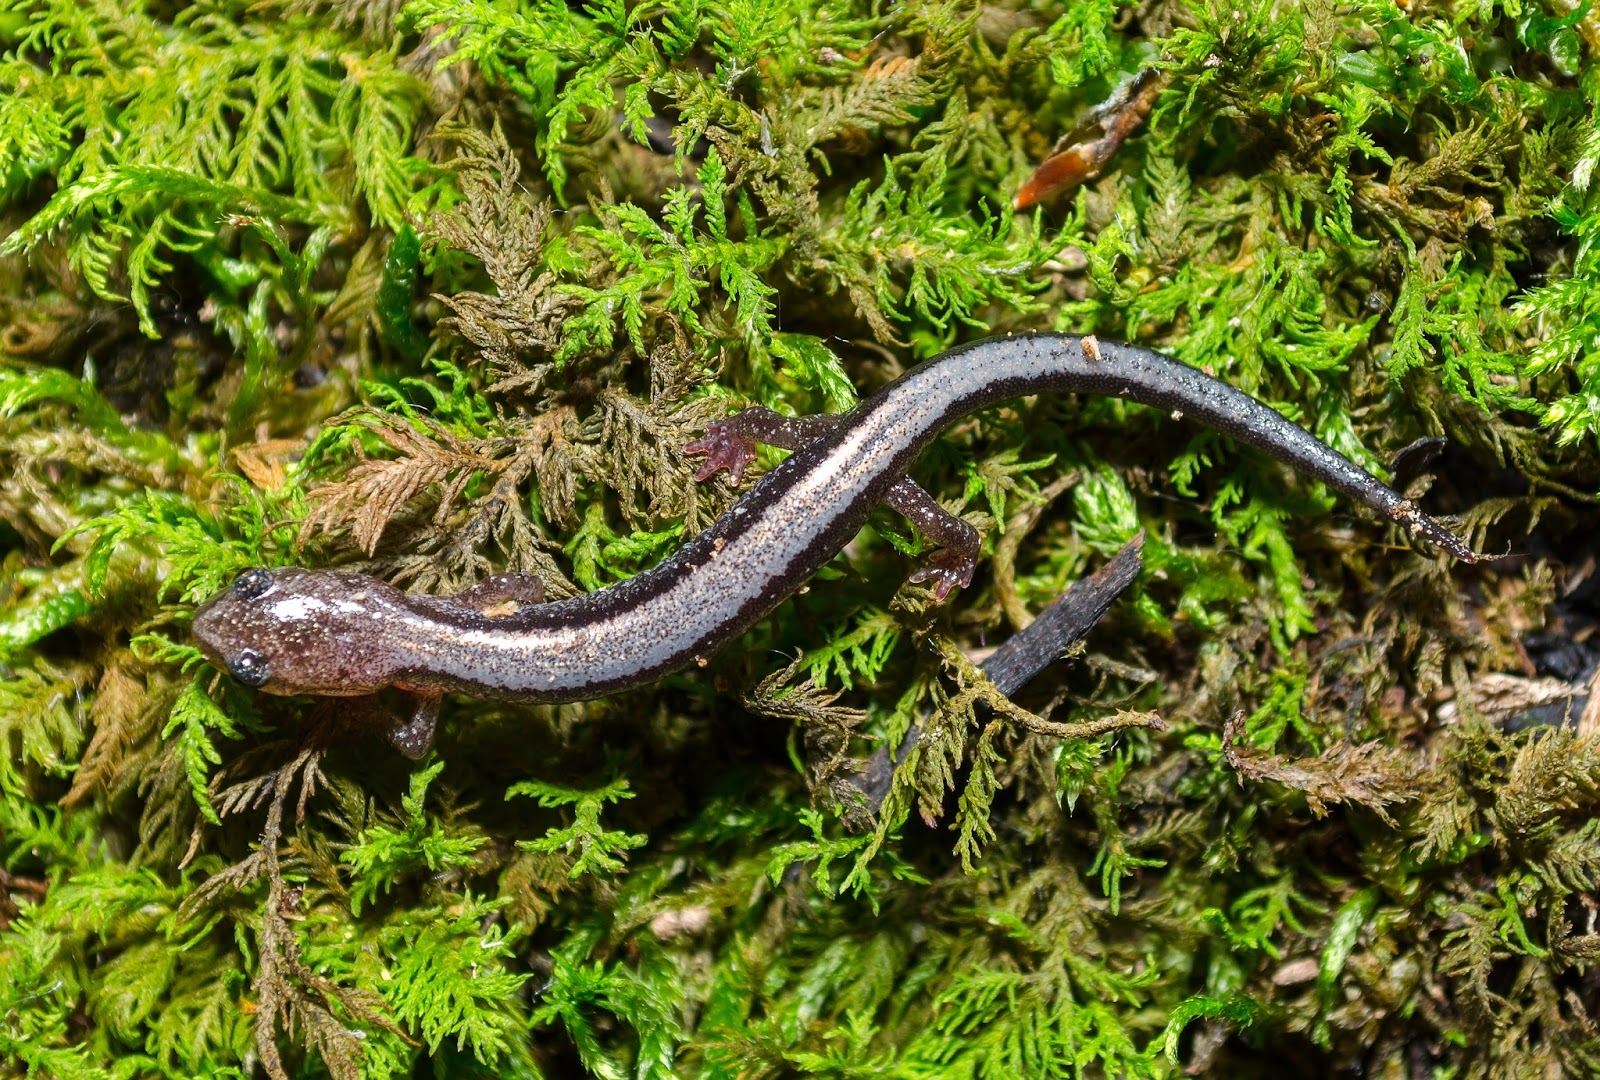 Silver-Striped Red-Backed Salamander